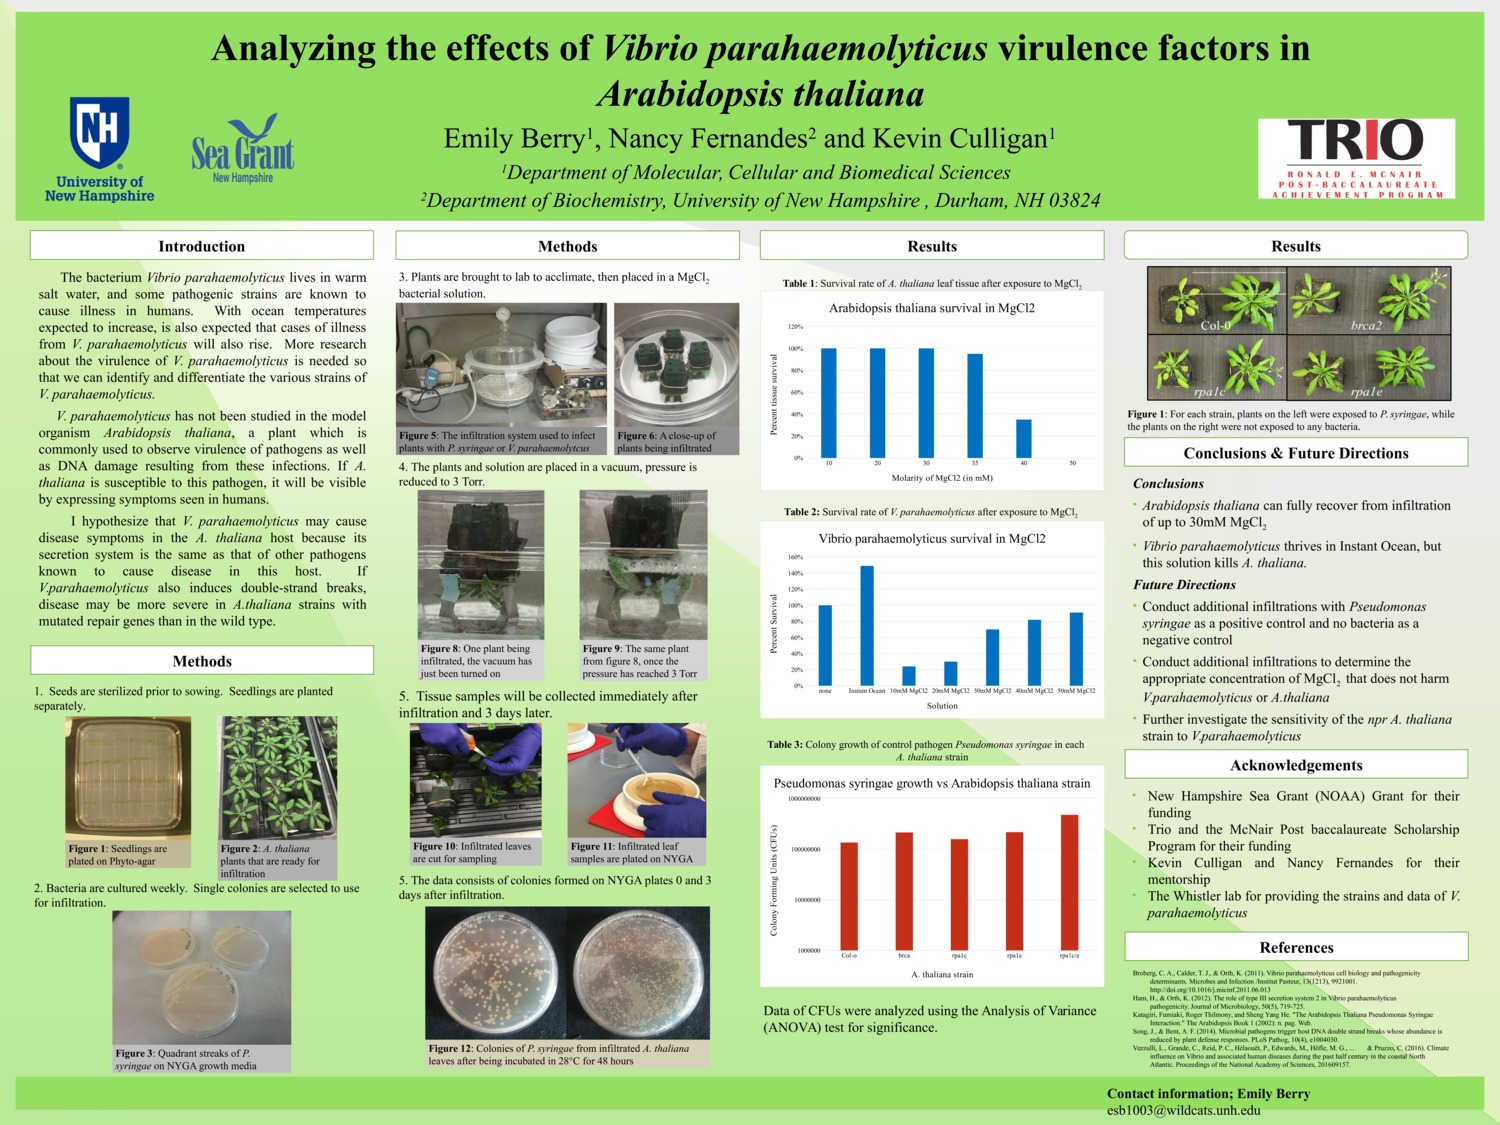 Analyzing The Effects Of Vibrio Parahaemolyticus Virulence Factors In Arabidopsis Thaliana by esb1003